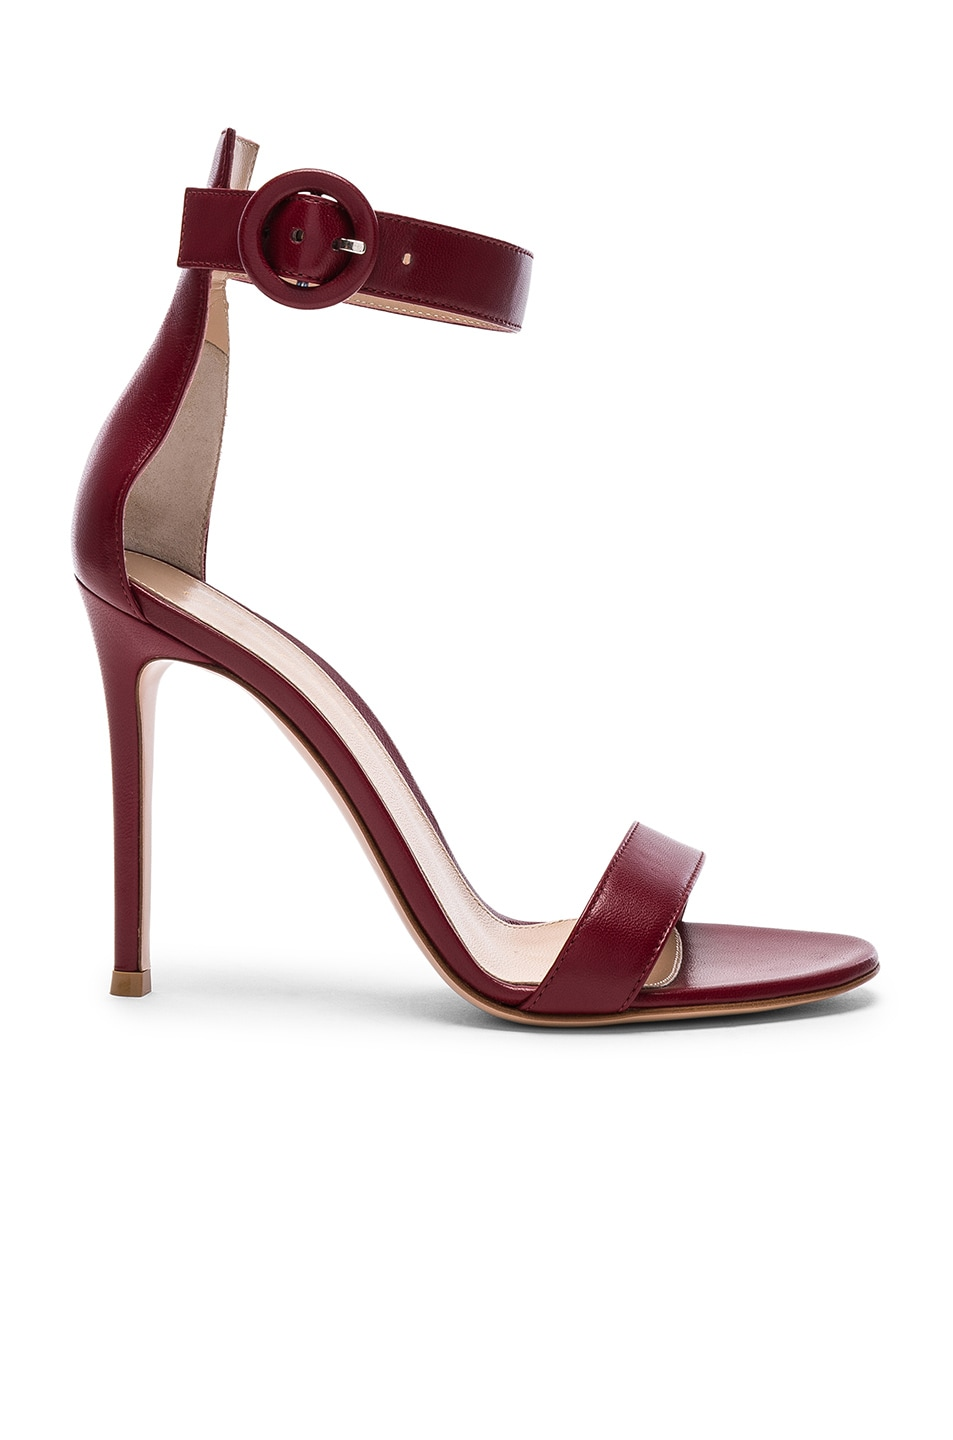 Image 1 of Gianvito Rossi for FWRD Leather Portofino Heels in Syrah